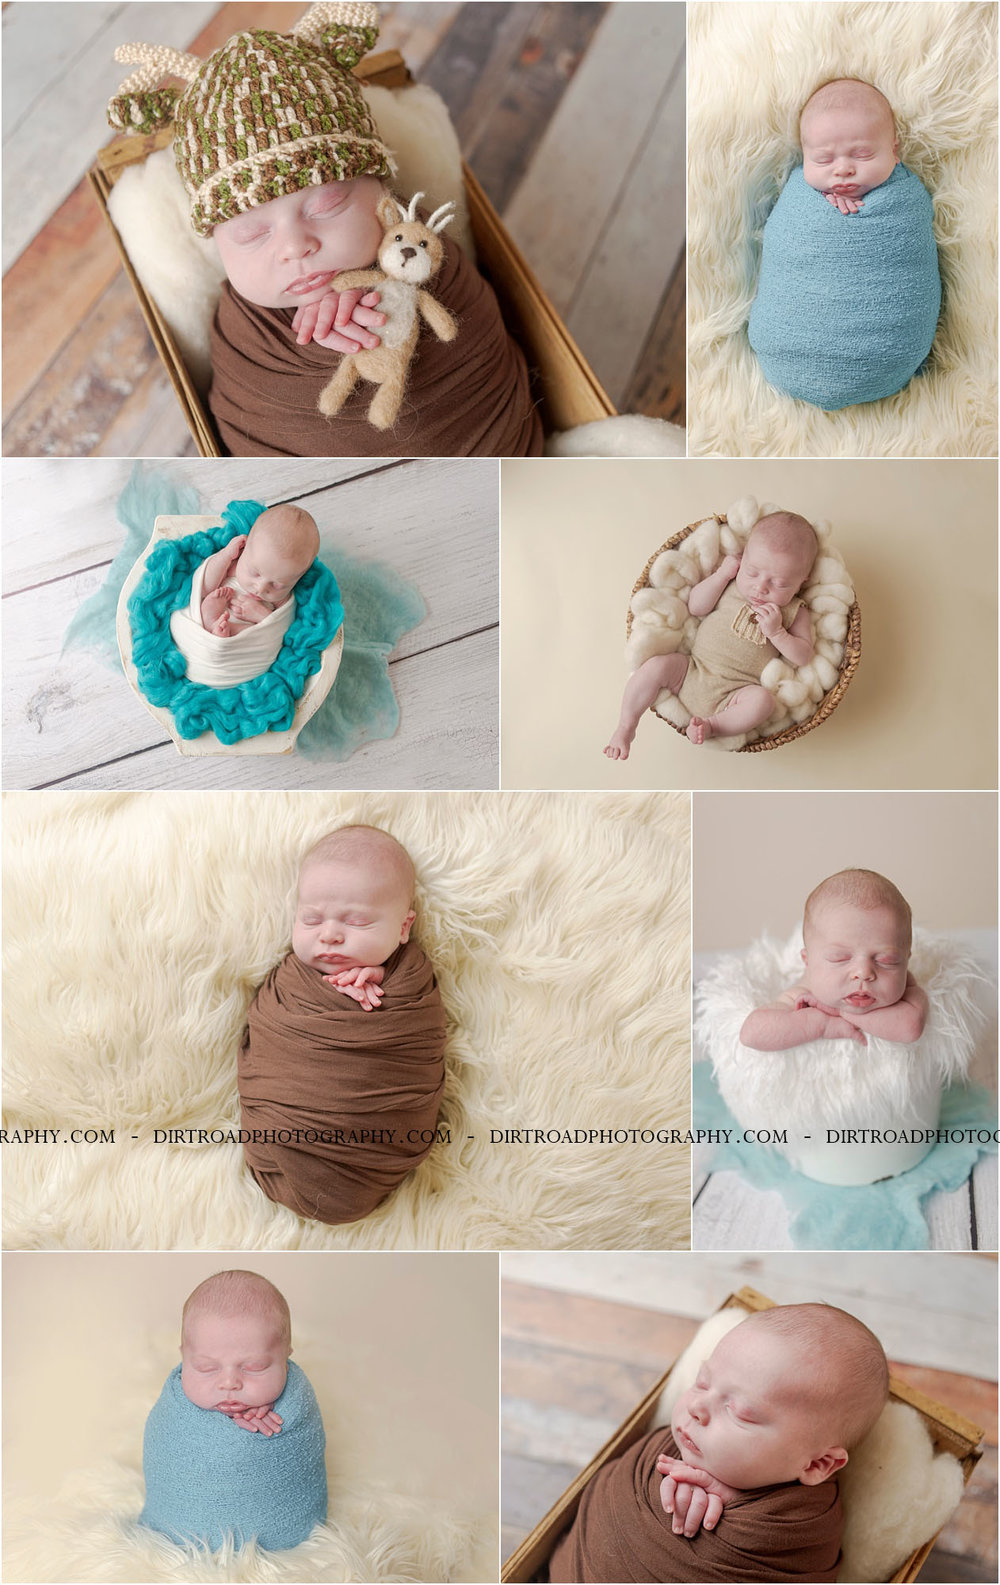 newborn-baby-session-boy-waylon-turquoise-teal-white-wood-floor-photos-southeast-nebraska-photographer-dirt-road-photography-bowl-wrapped-baby-lincoln-nebraska-photographer-located-near-wilber-nebraska-newborn-photography